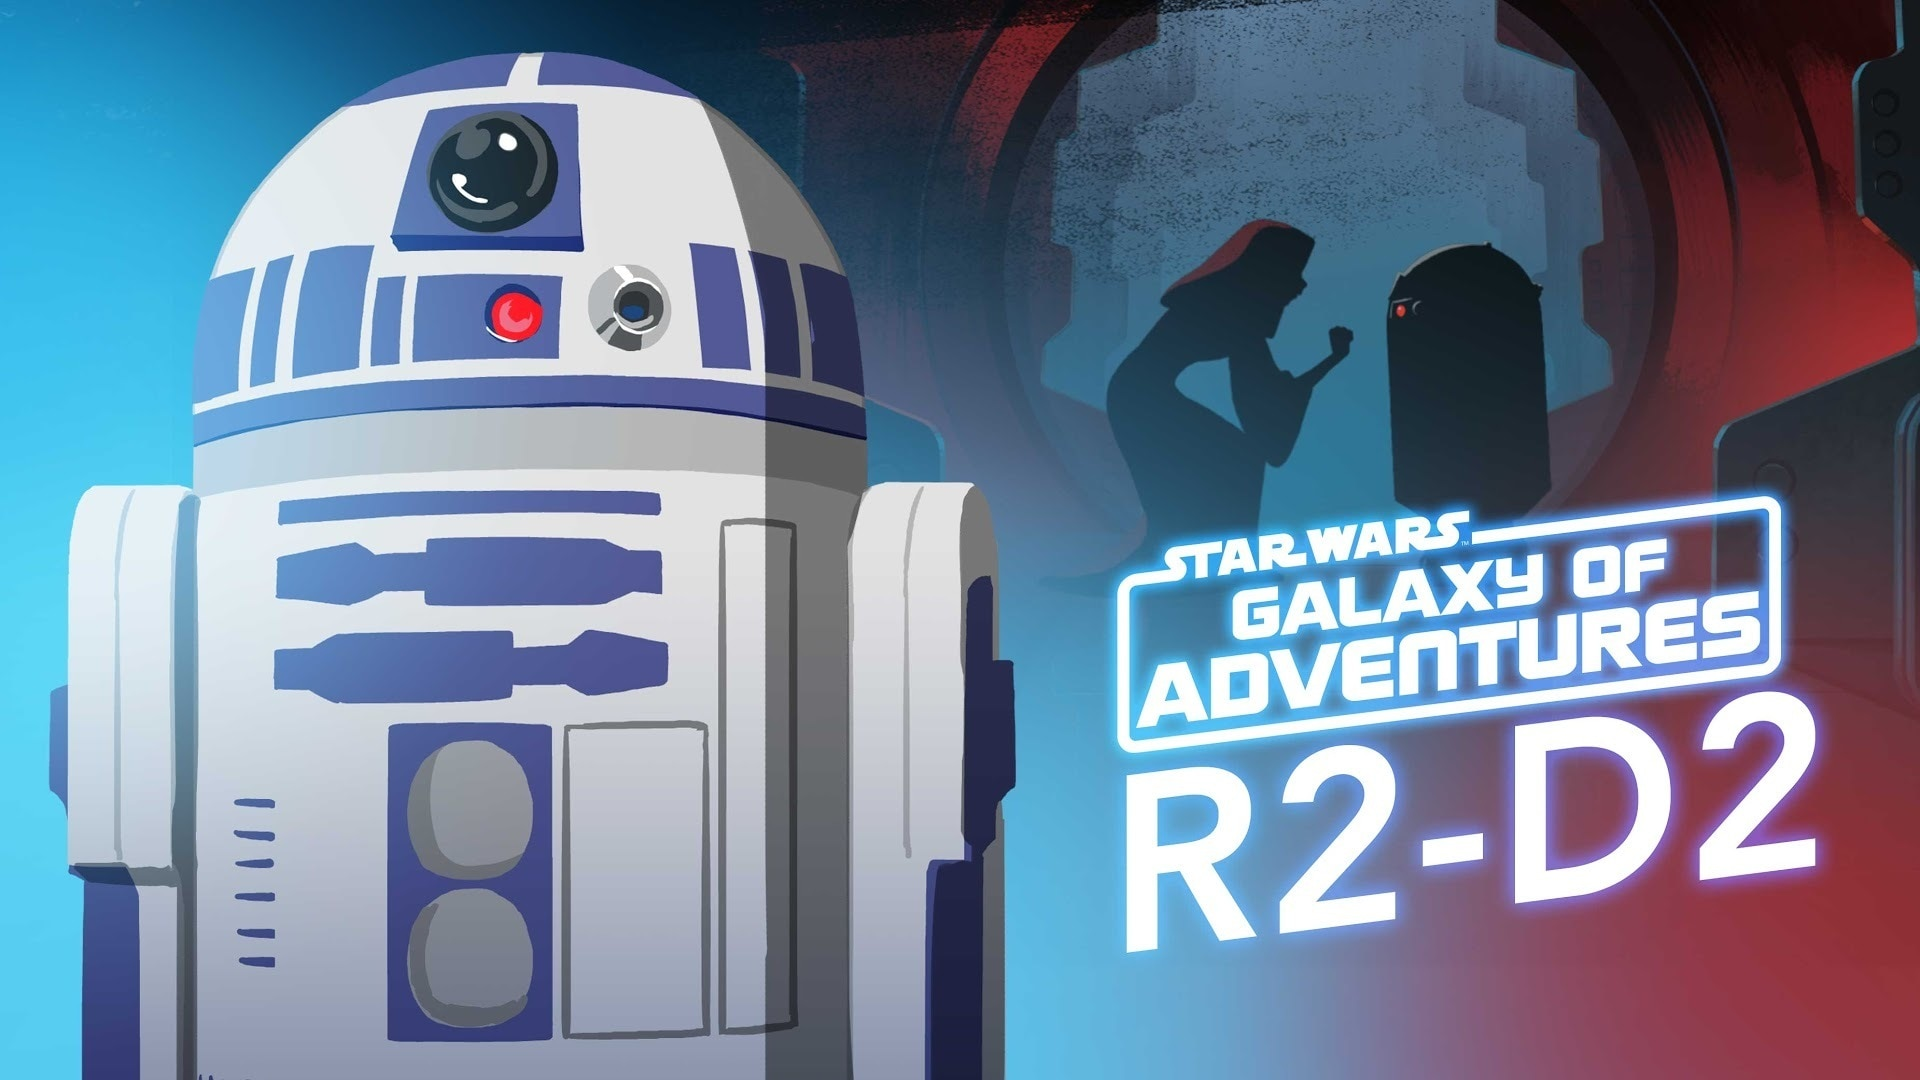 R2-D2 - A Loyal Droid | Star Wars Galaxy of Adventures